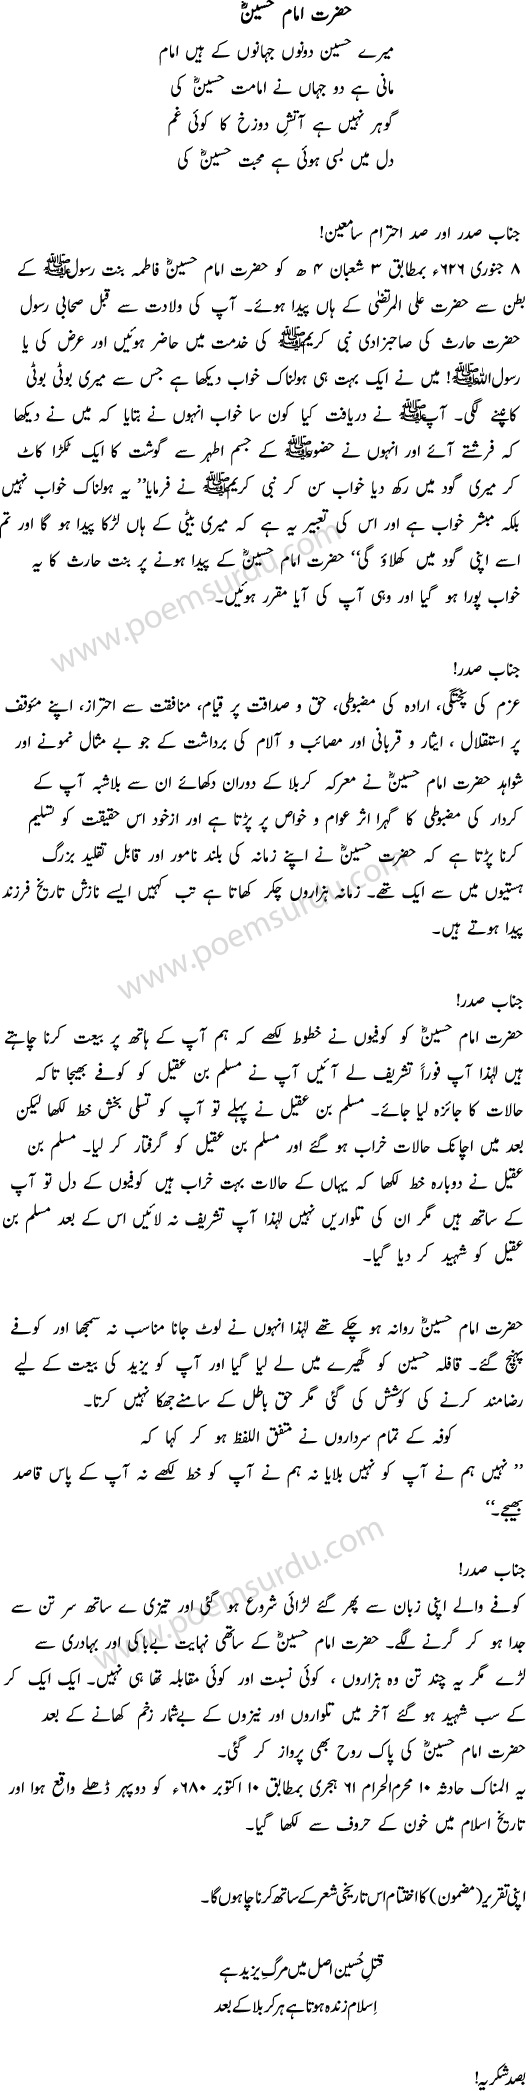 Hazrat Imam Hussain (RA) Speech in Urdu